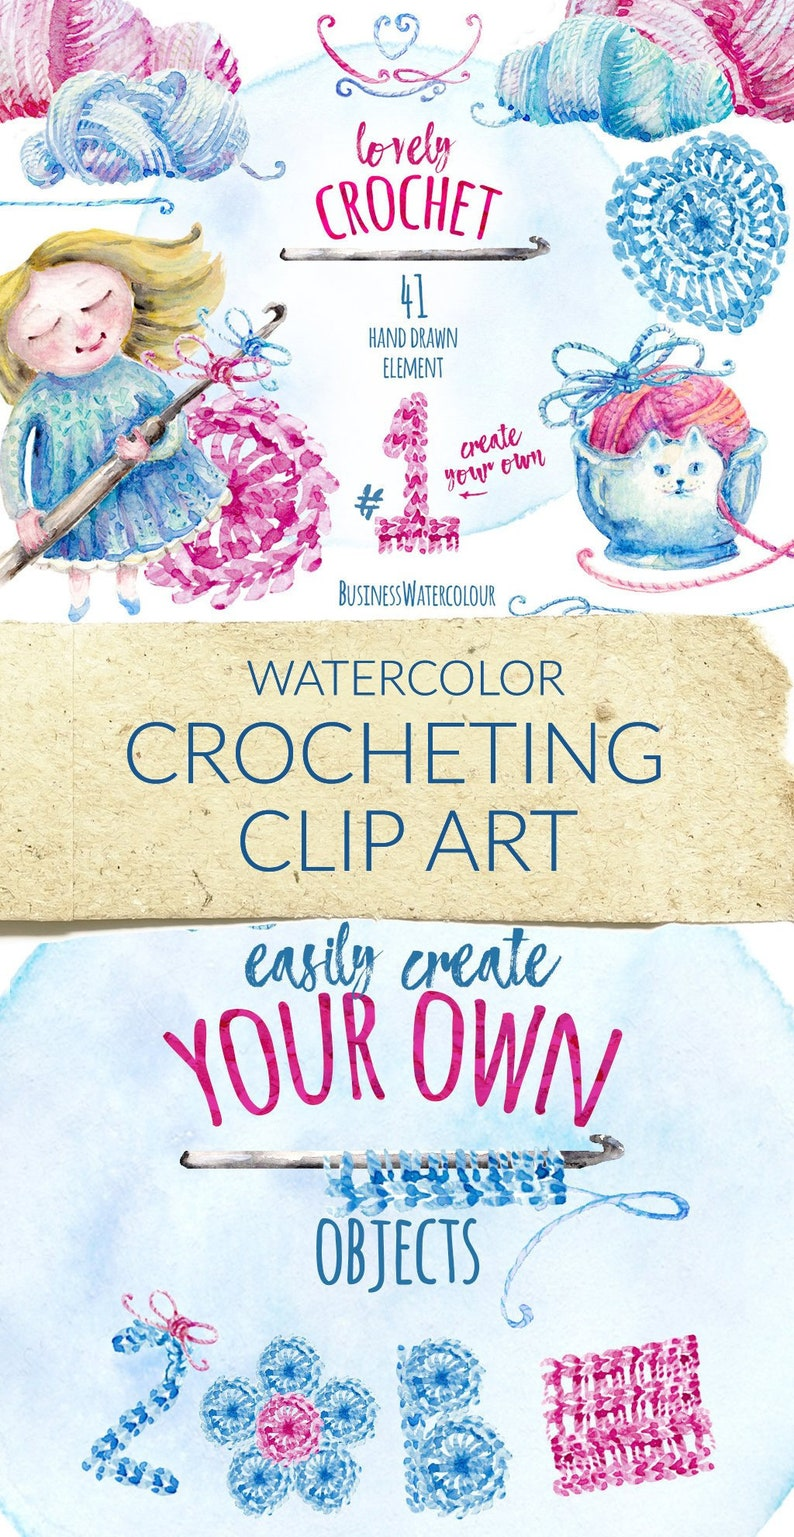 Lovely crocheting clipart hand drawn watercolor yarn wool image 0